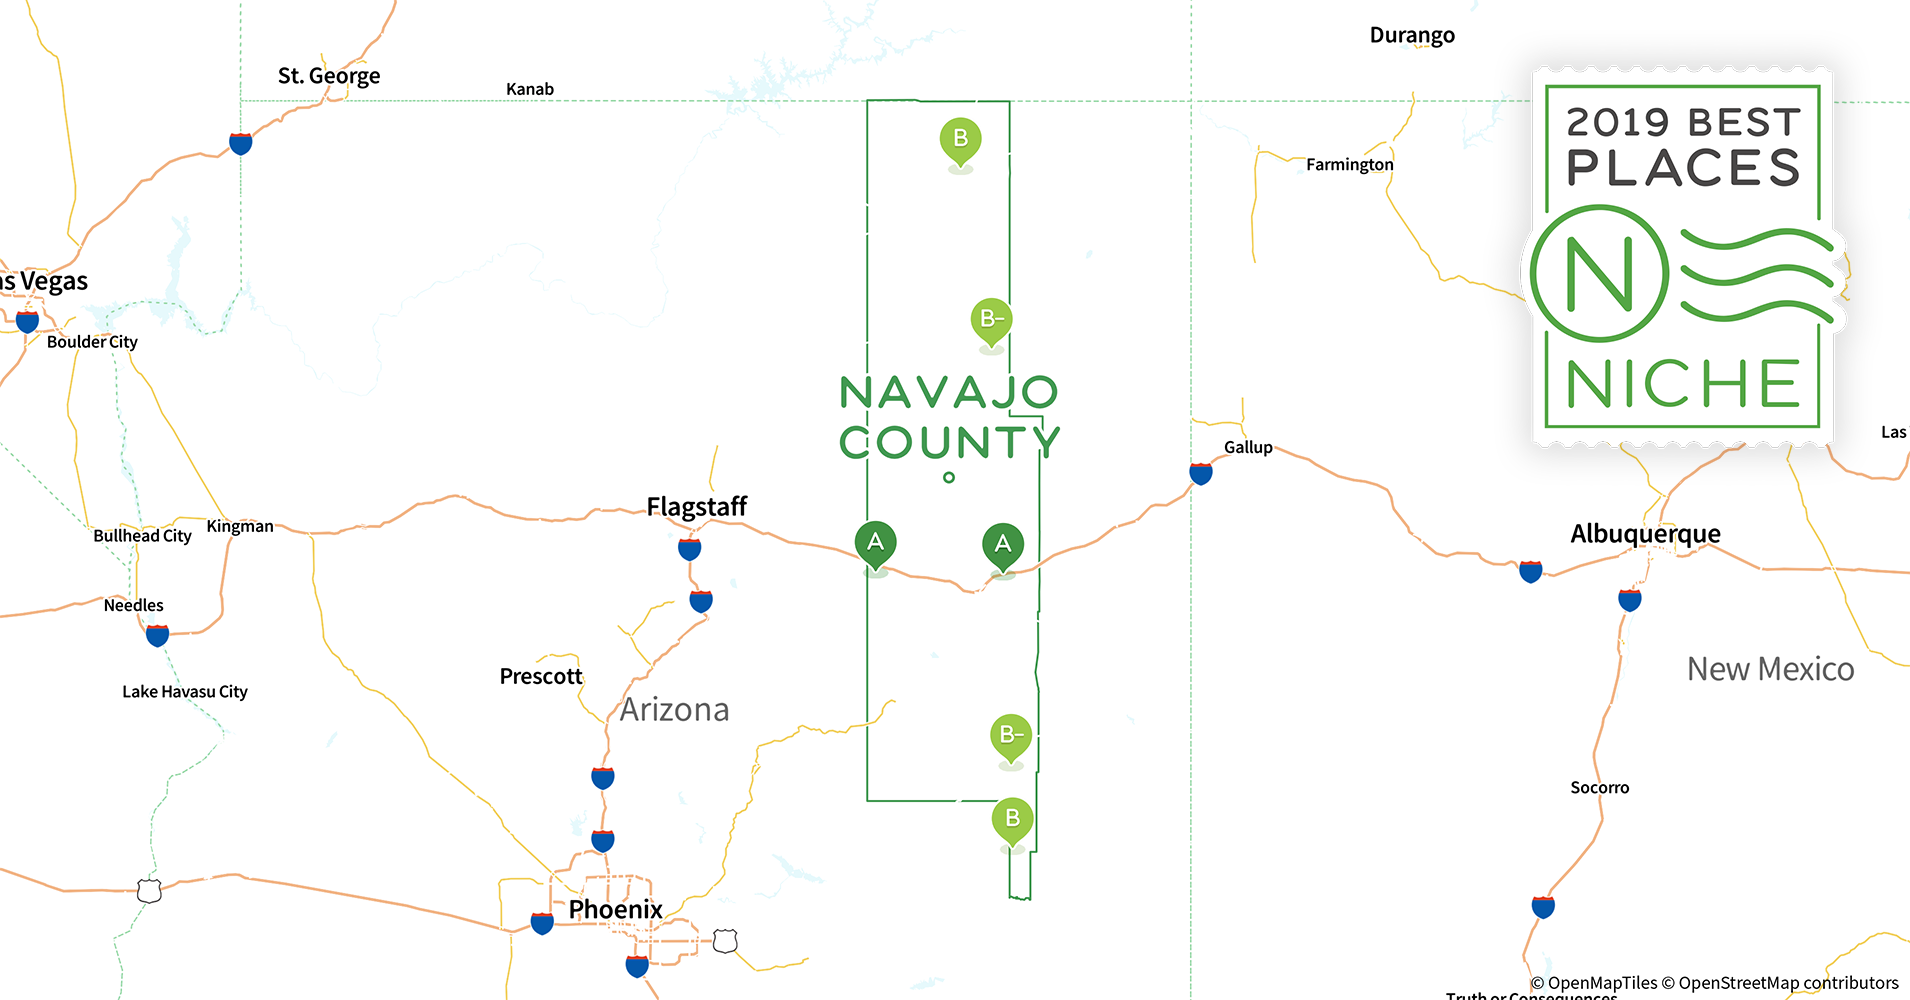 2019 Best Places to Live in Navajo County, AZ - Niche